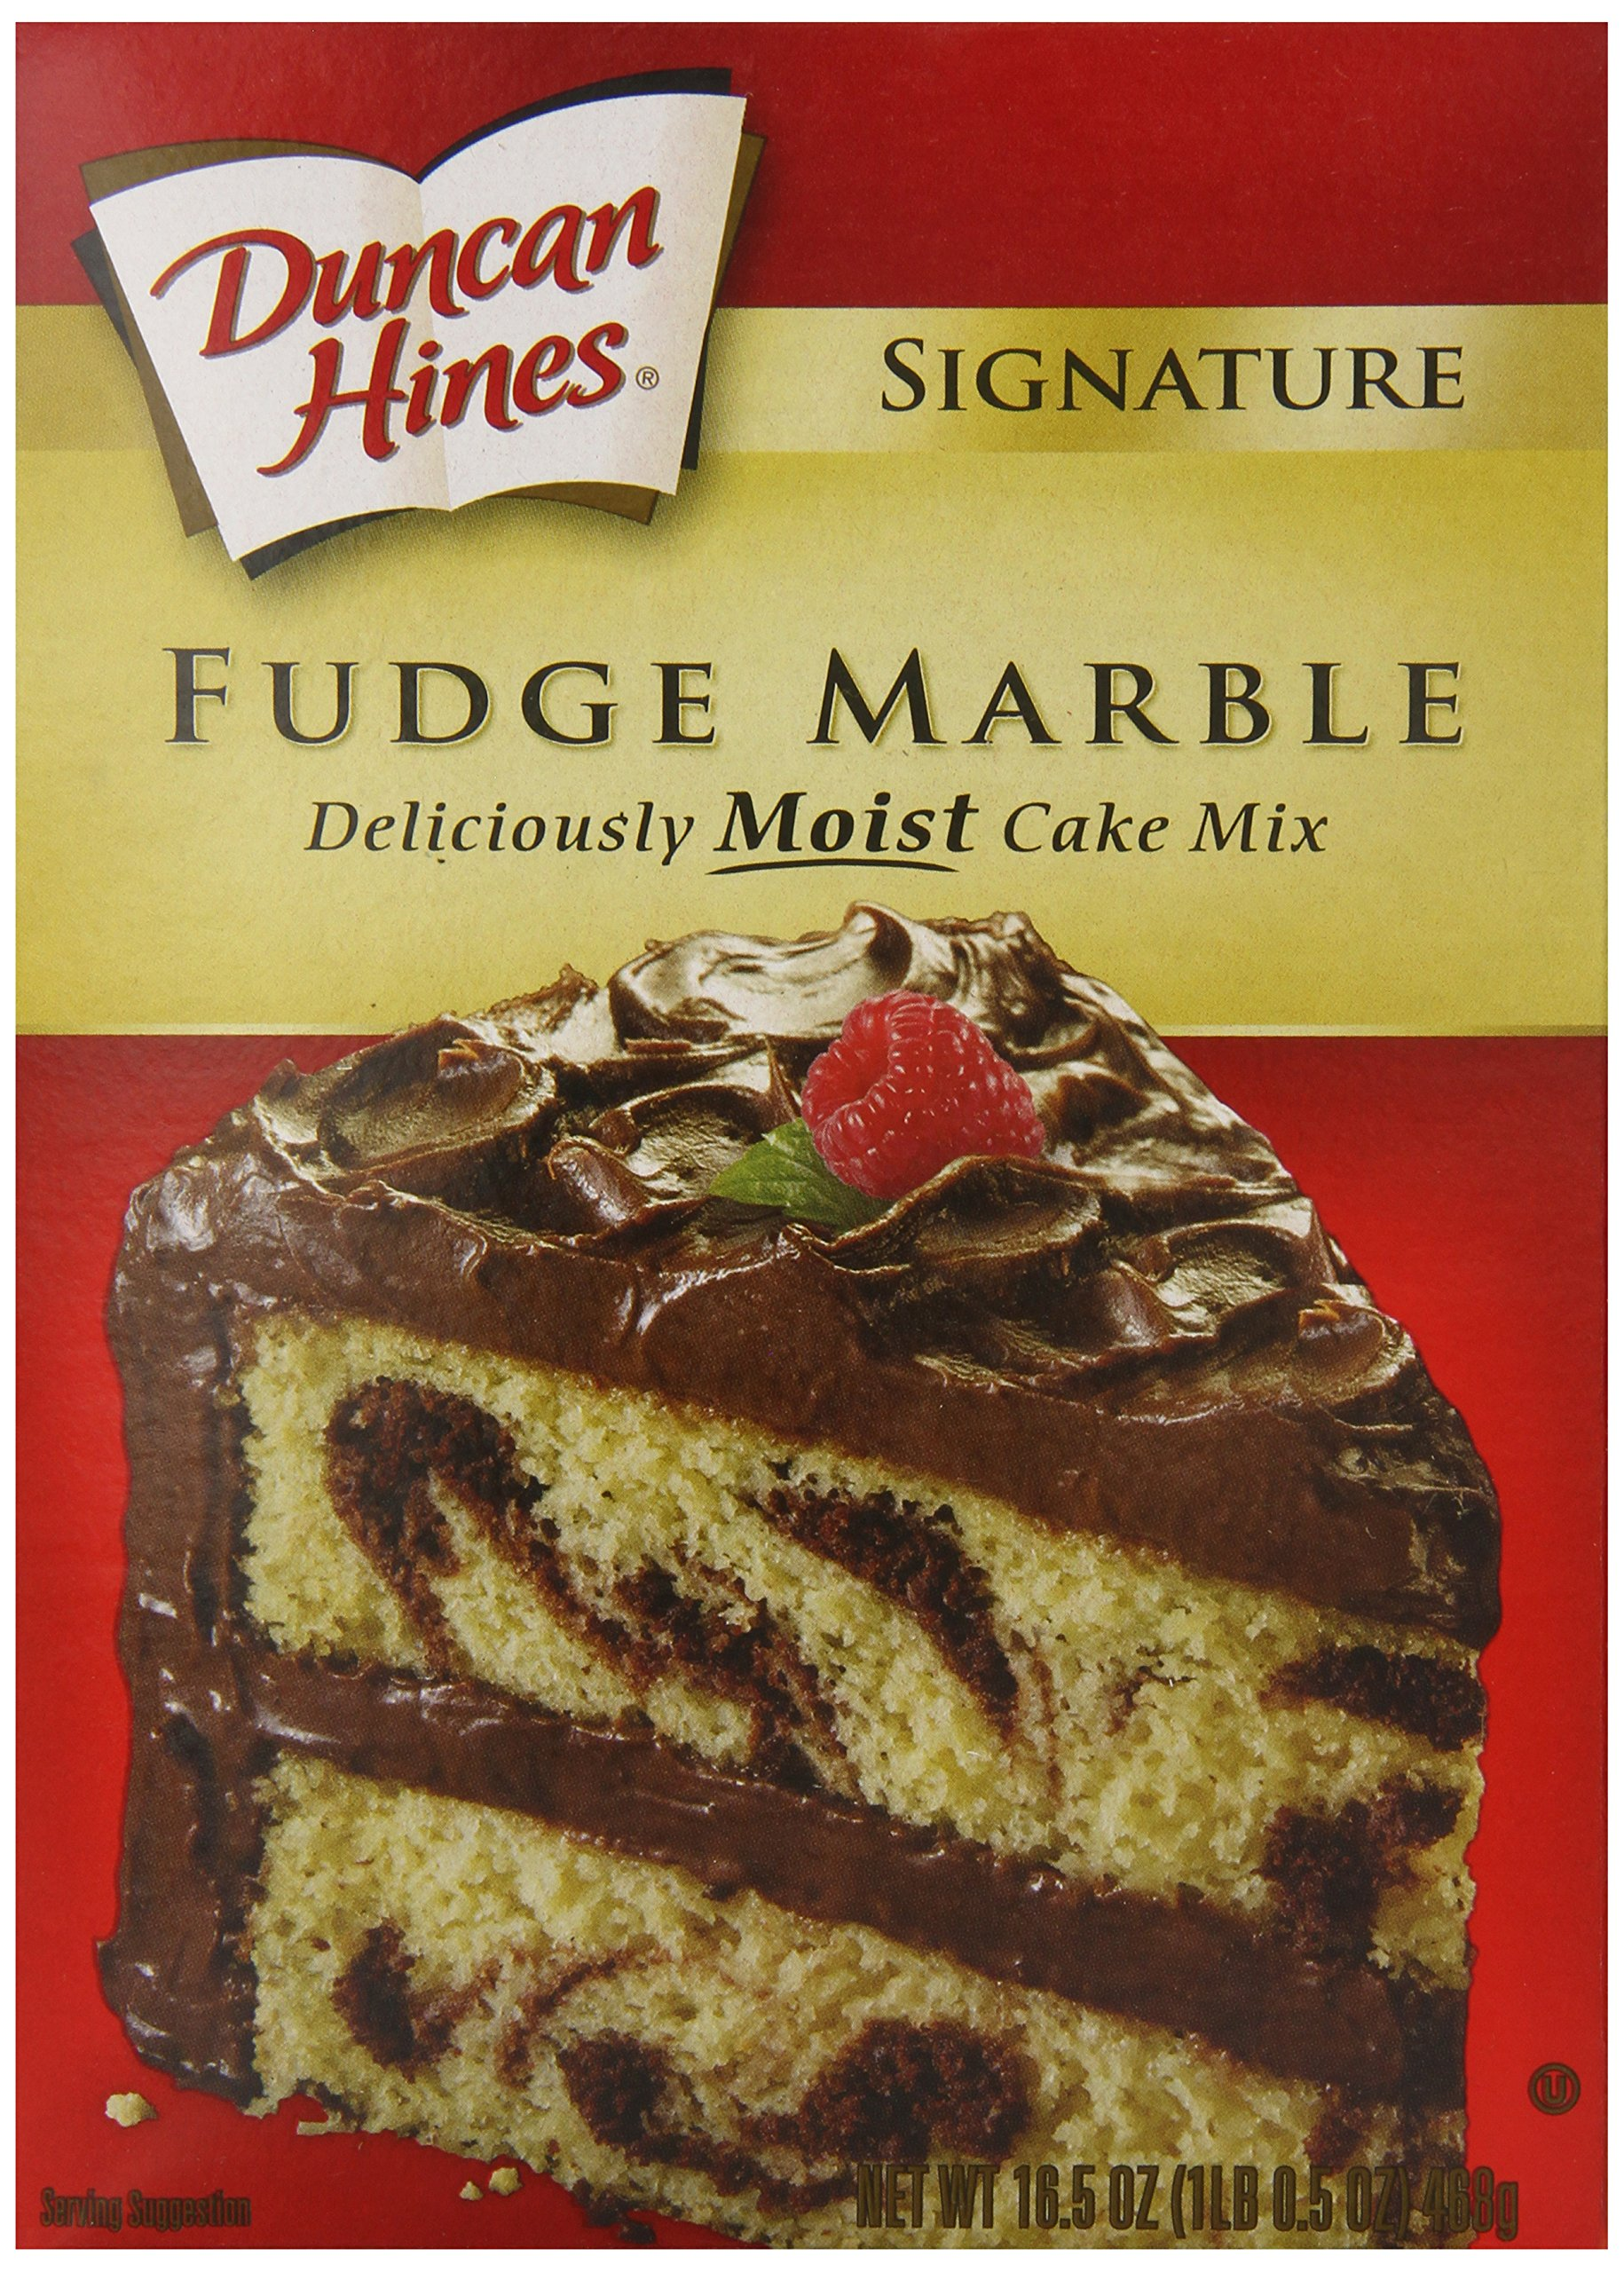 Duncan Hines Cake Mix, Fudge Marble, 16.5 Ounce (Pack of 12)